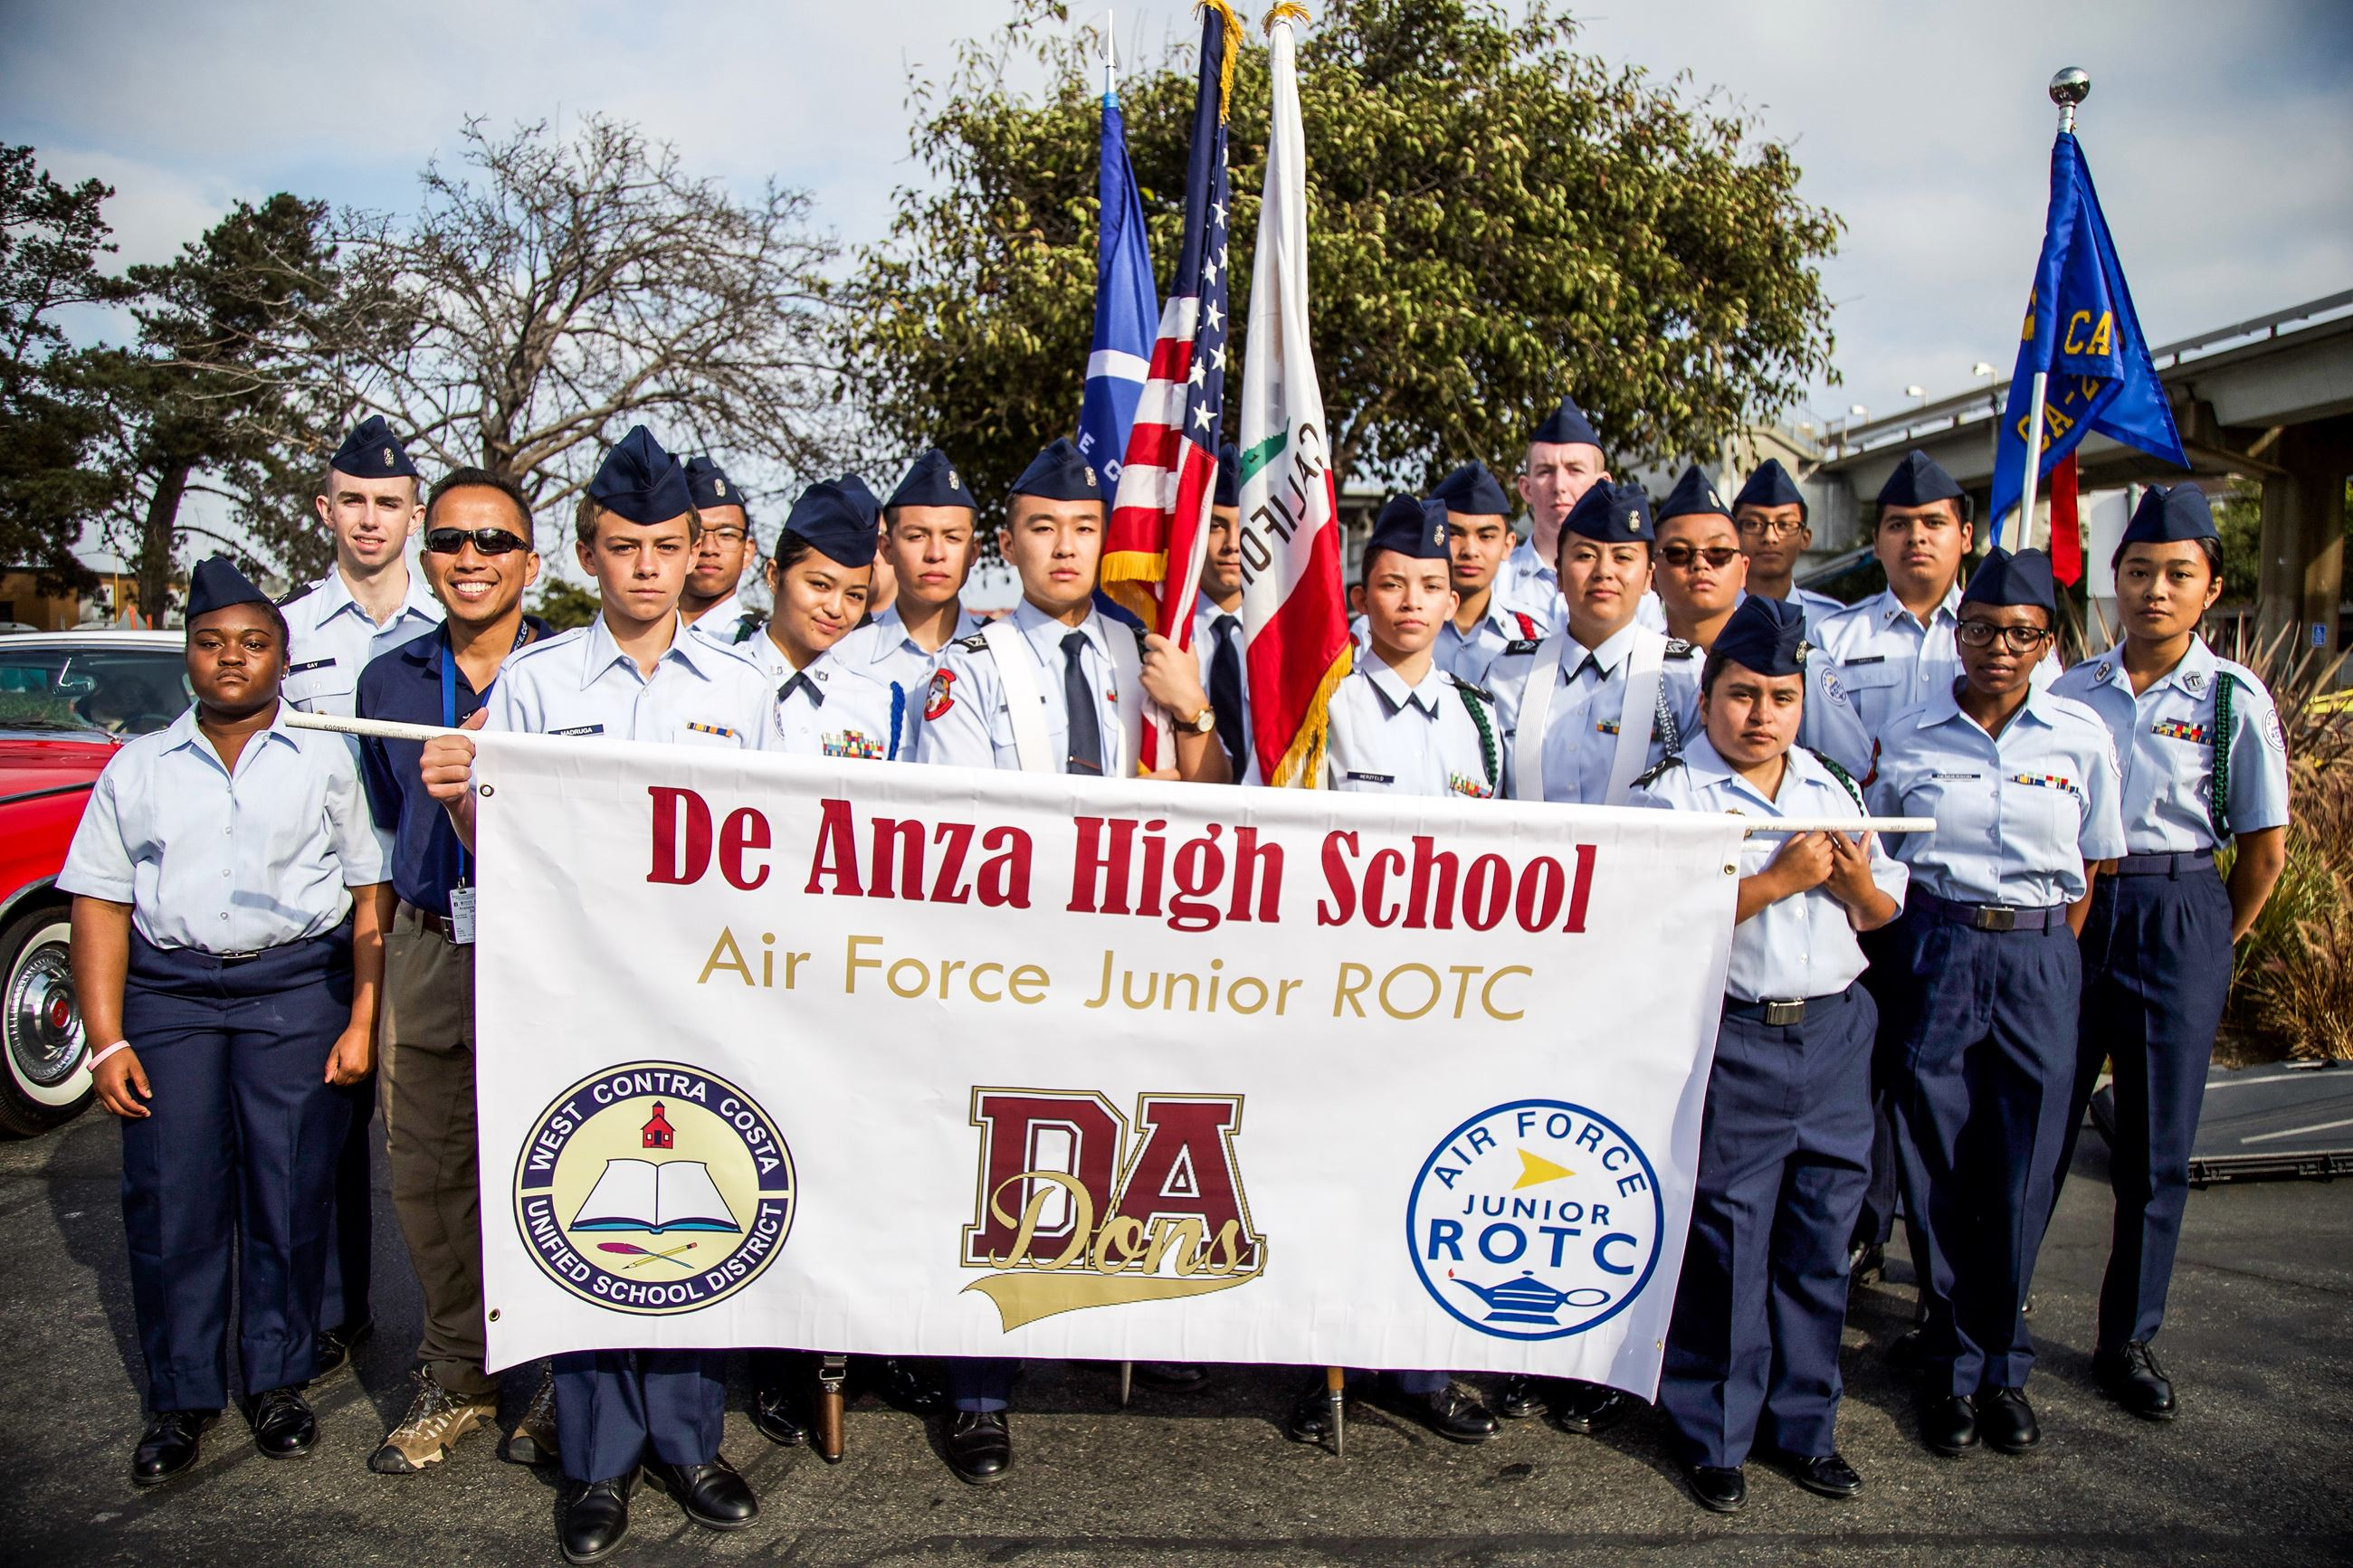 027 ROTC - Photo by Marin Stuart